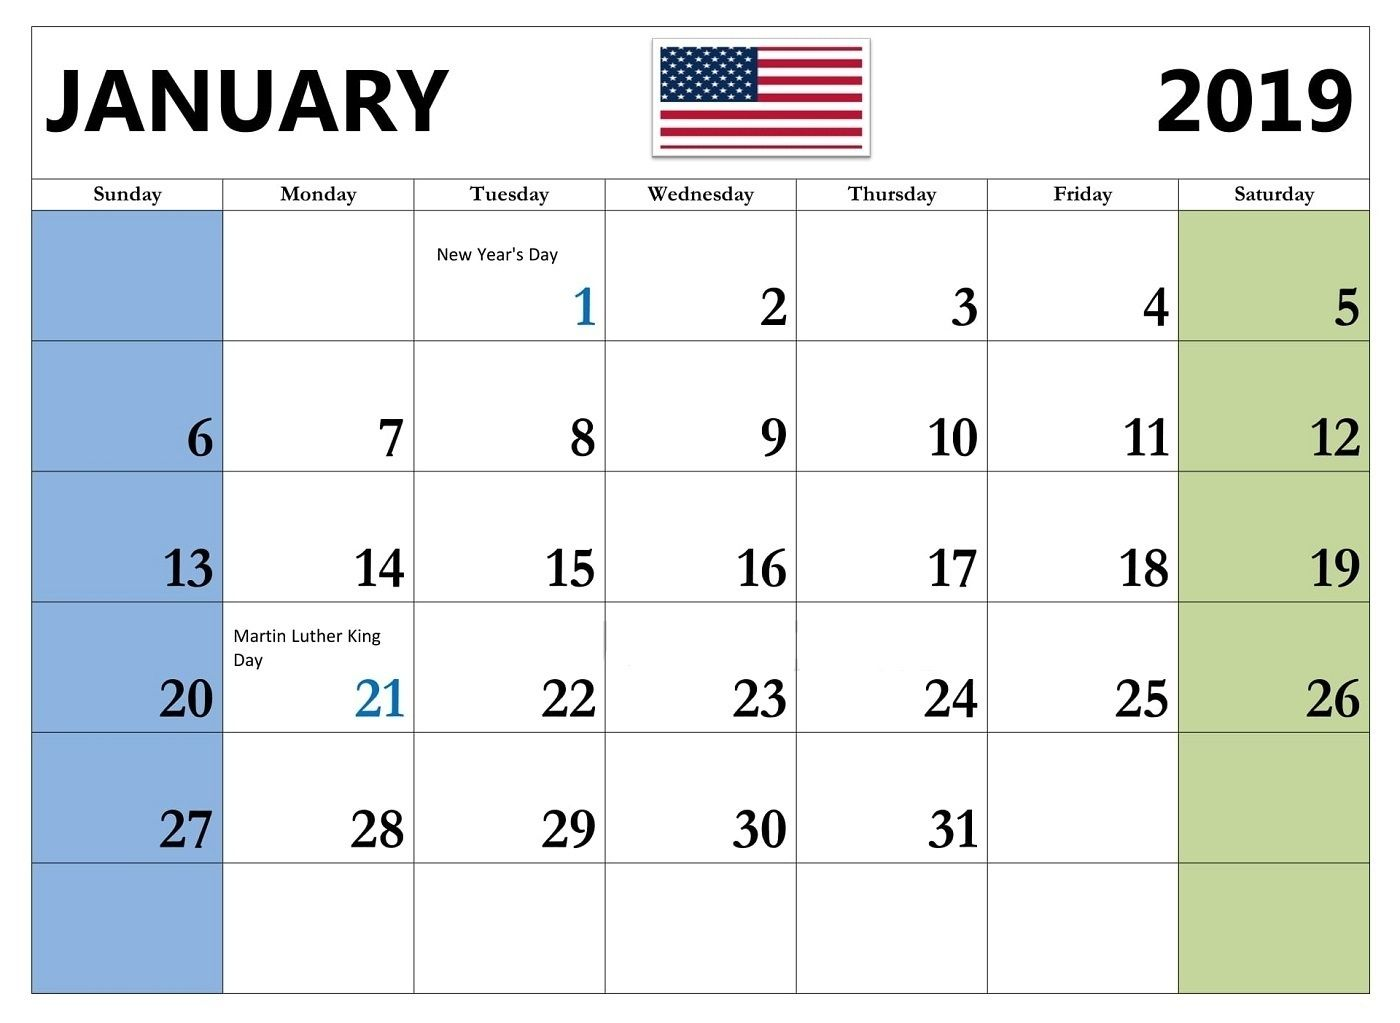 Monthly Calendar Usa : January usa holiday calendar